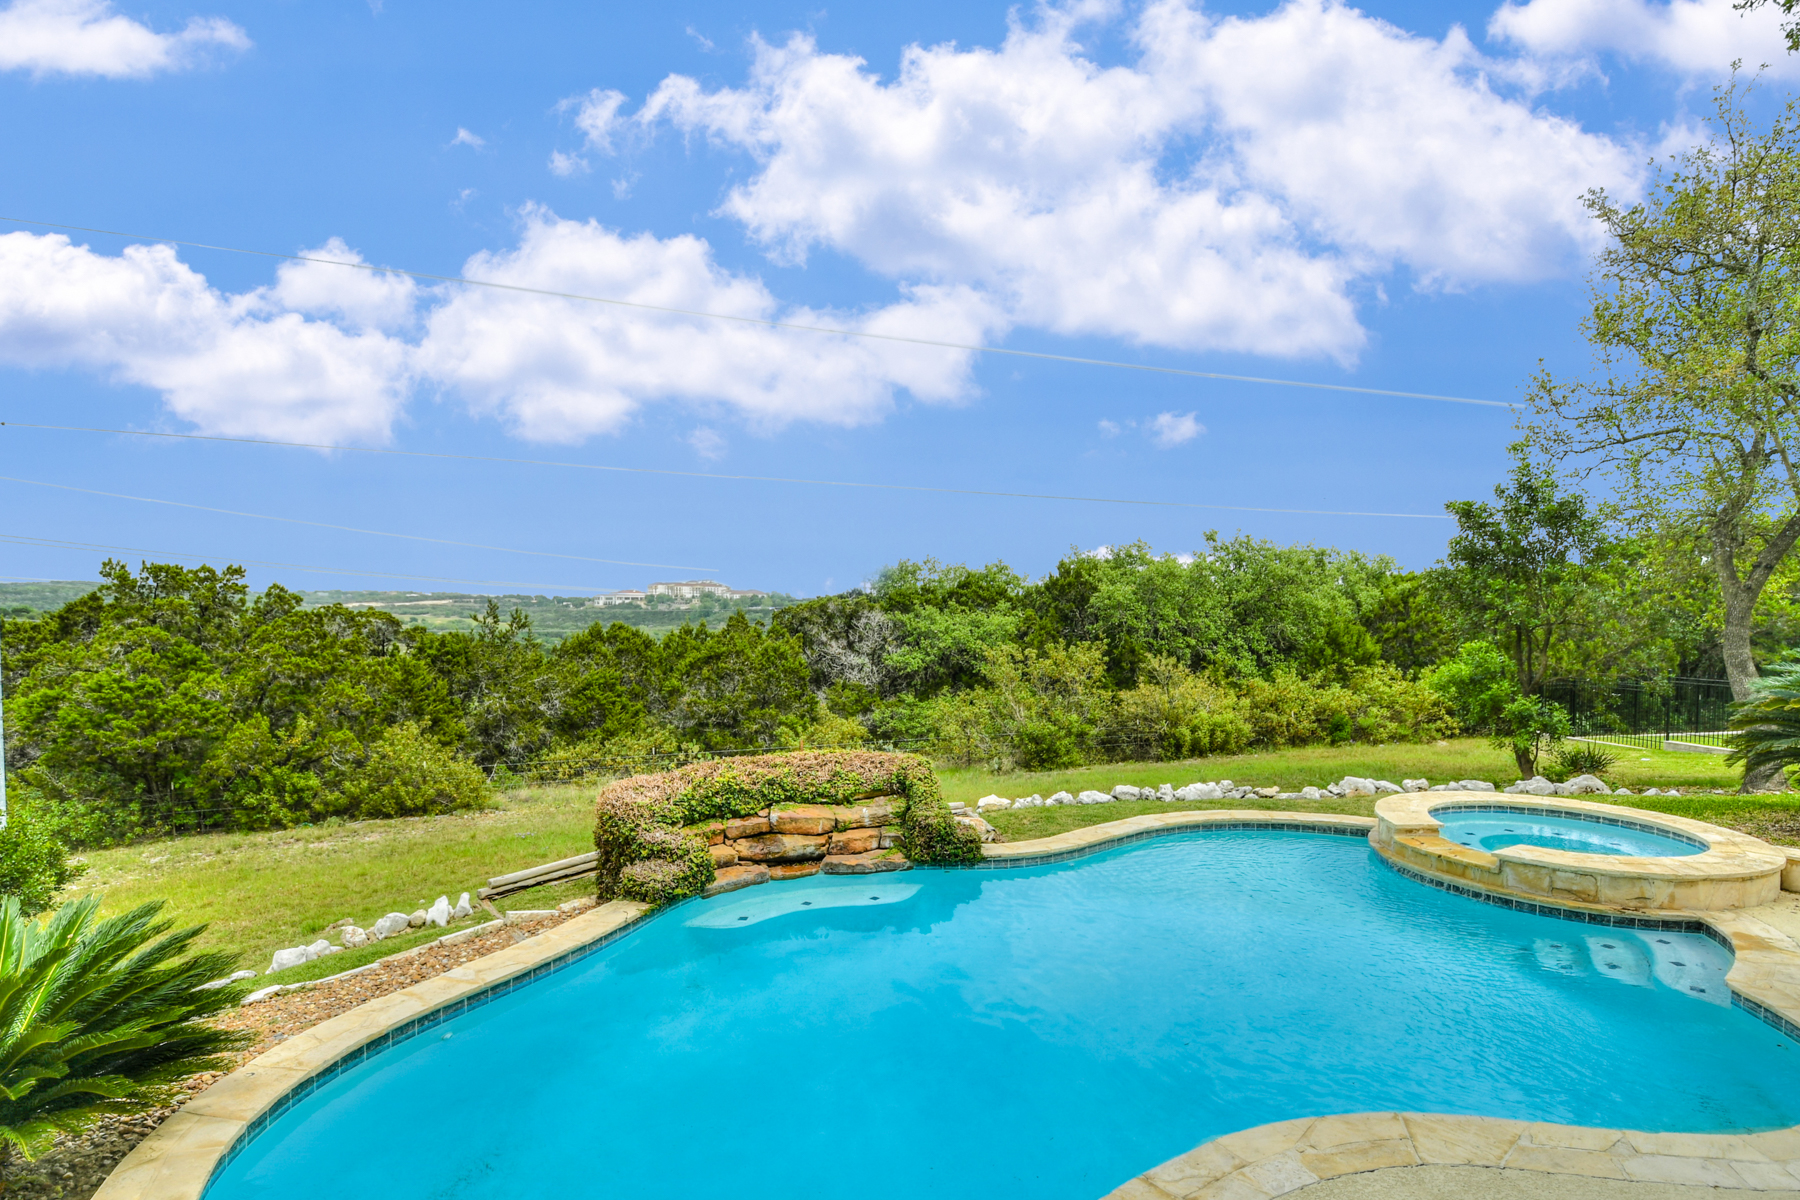 Additional photo for property listing at Private Home in Moss Brook Estates 16863 Mossford San Antonio, Texas 78255 United States